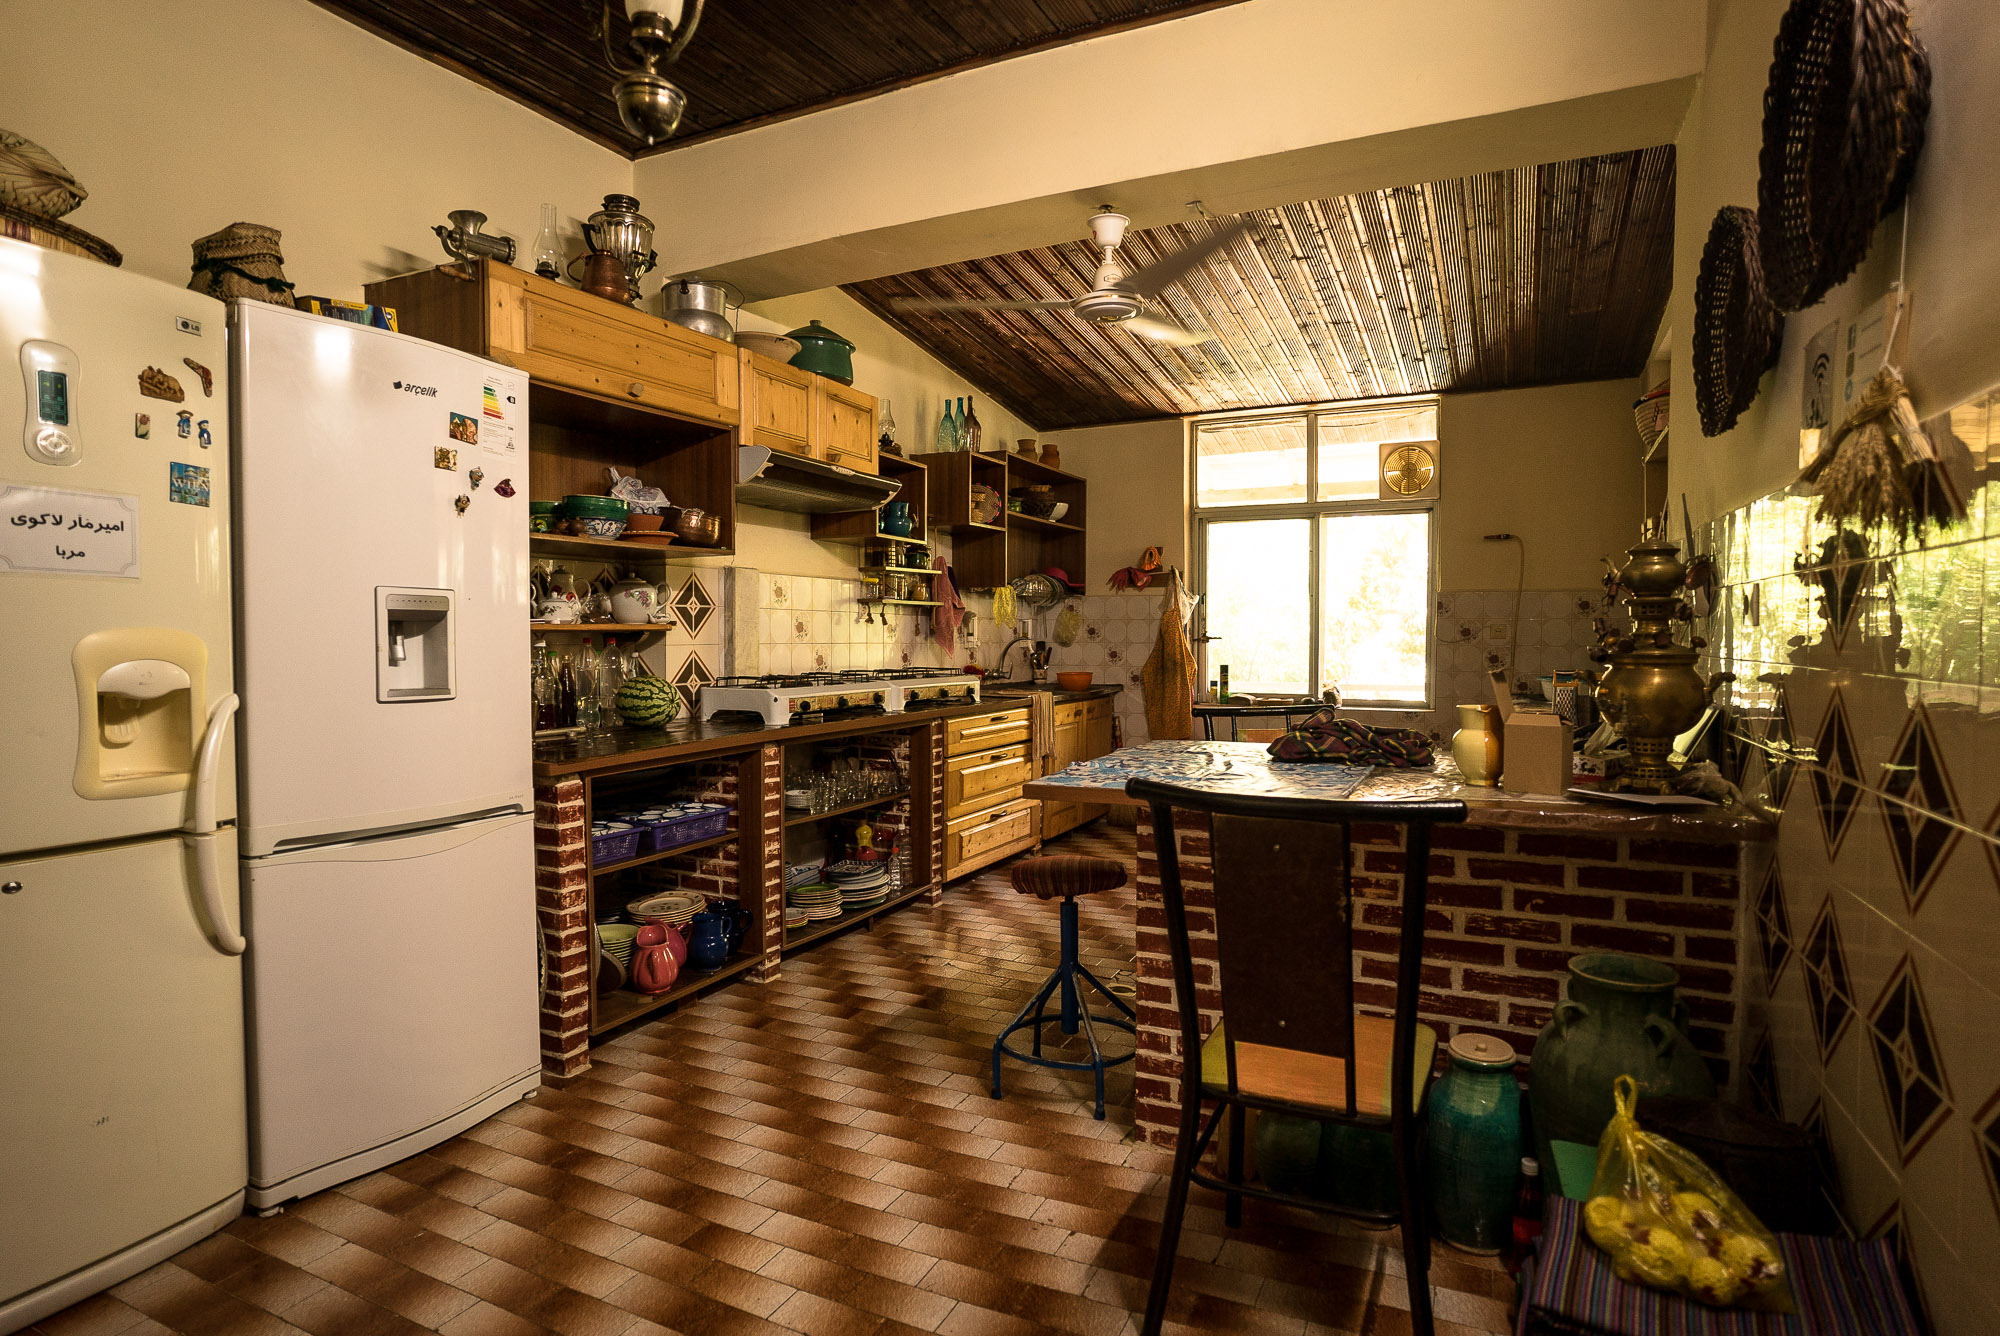 Gileboom kitchen